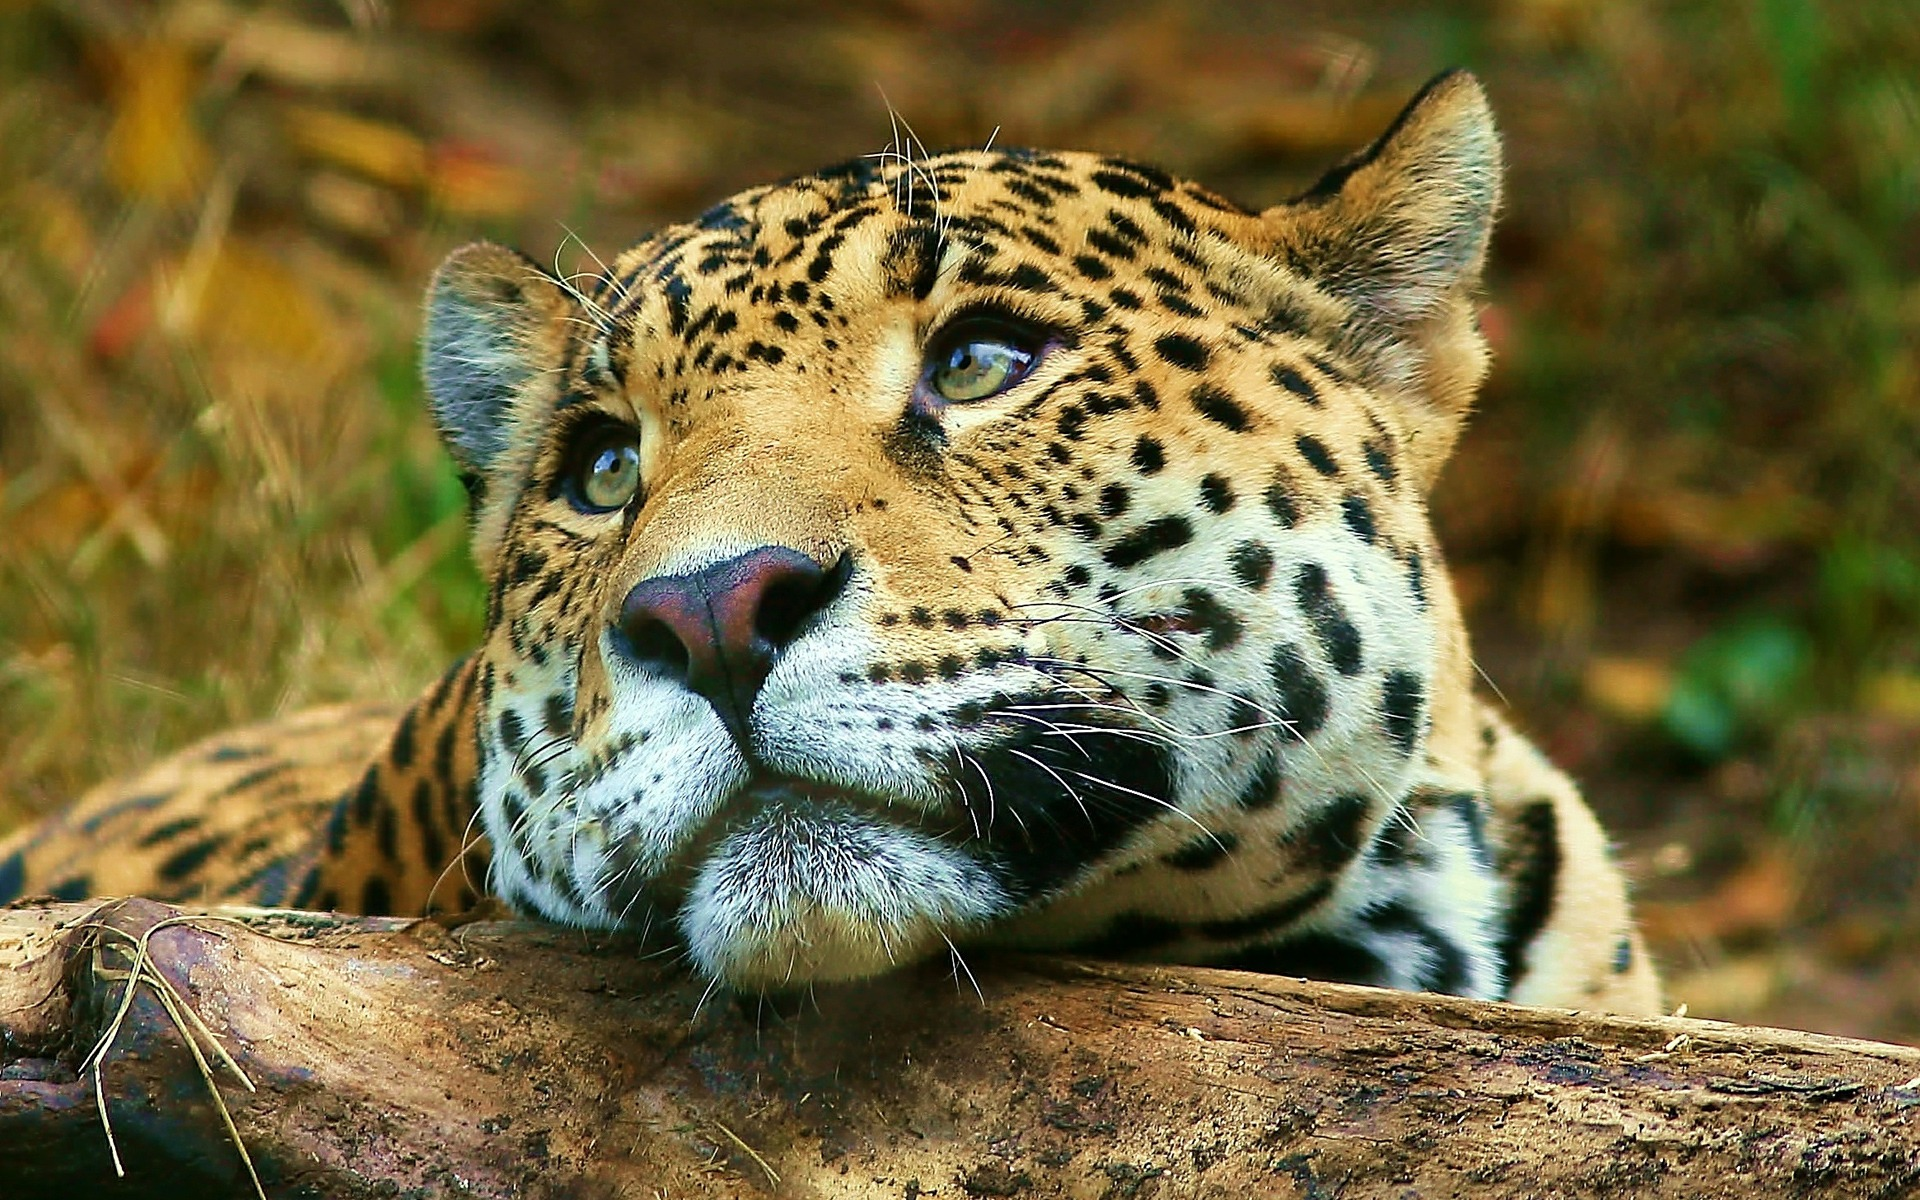 Leopard Daydreaming Wallpaper Big Cats Animals Wallpapers